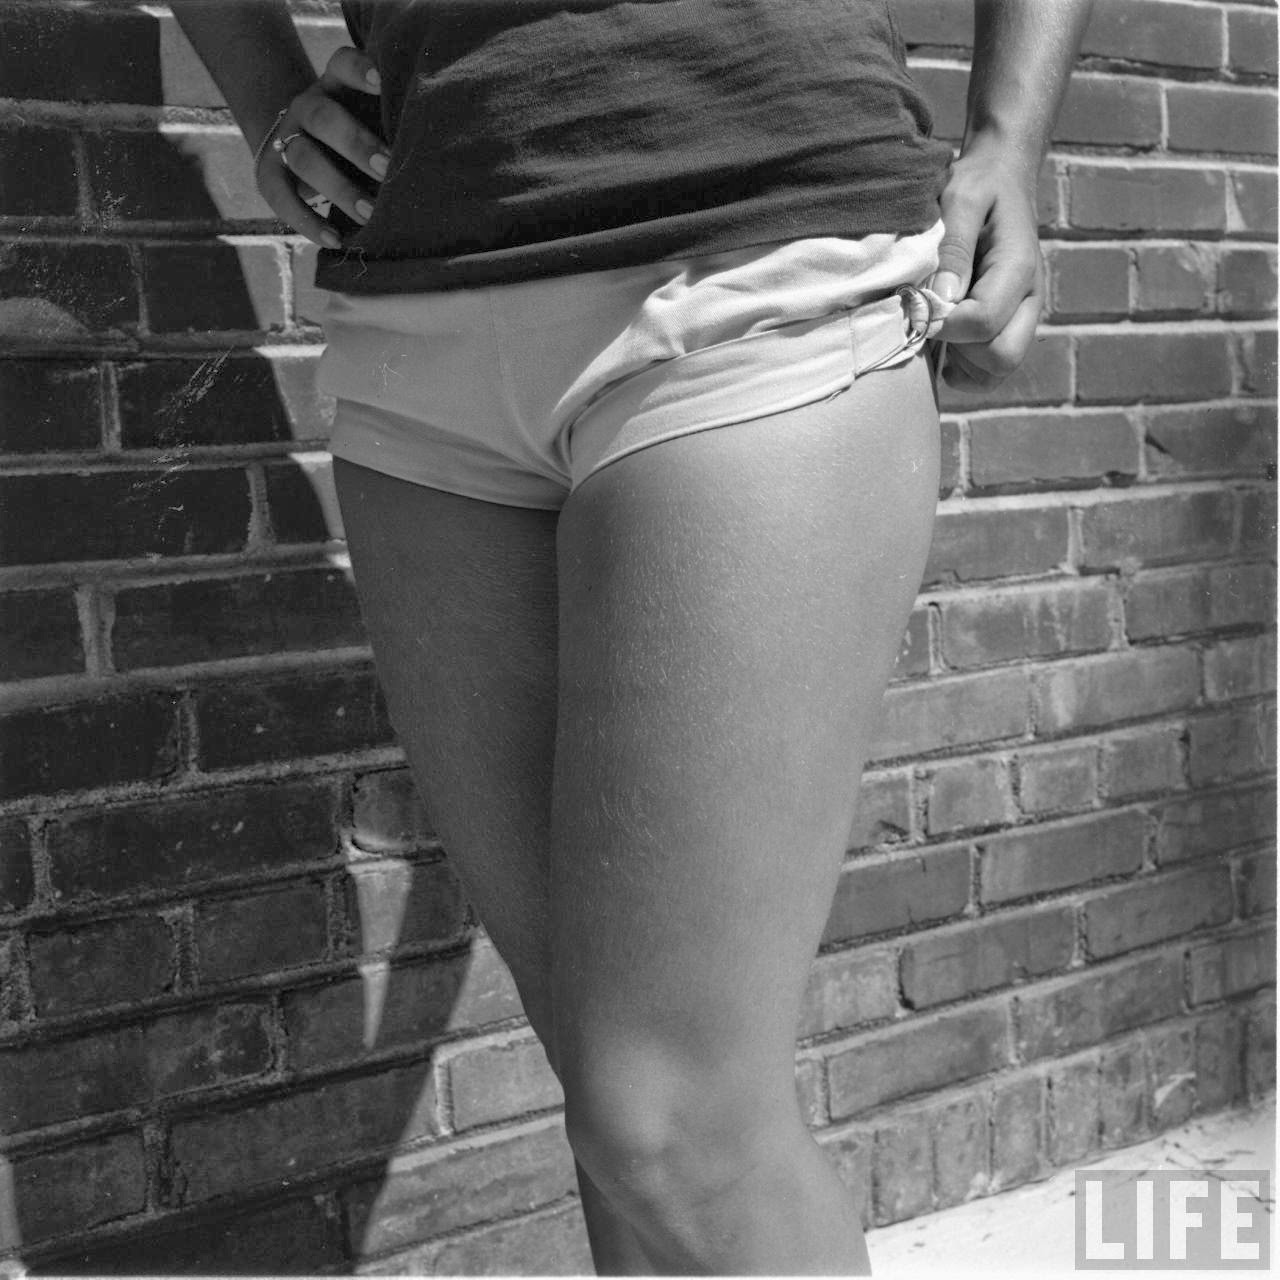 Short Shorts in the 1950's (1)